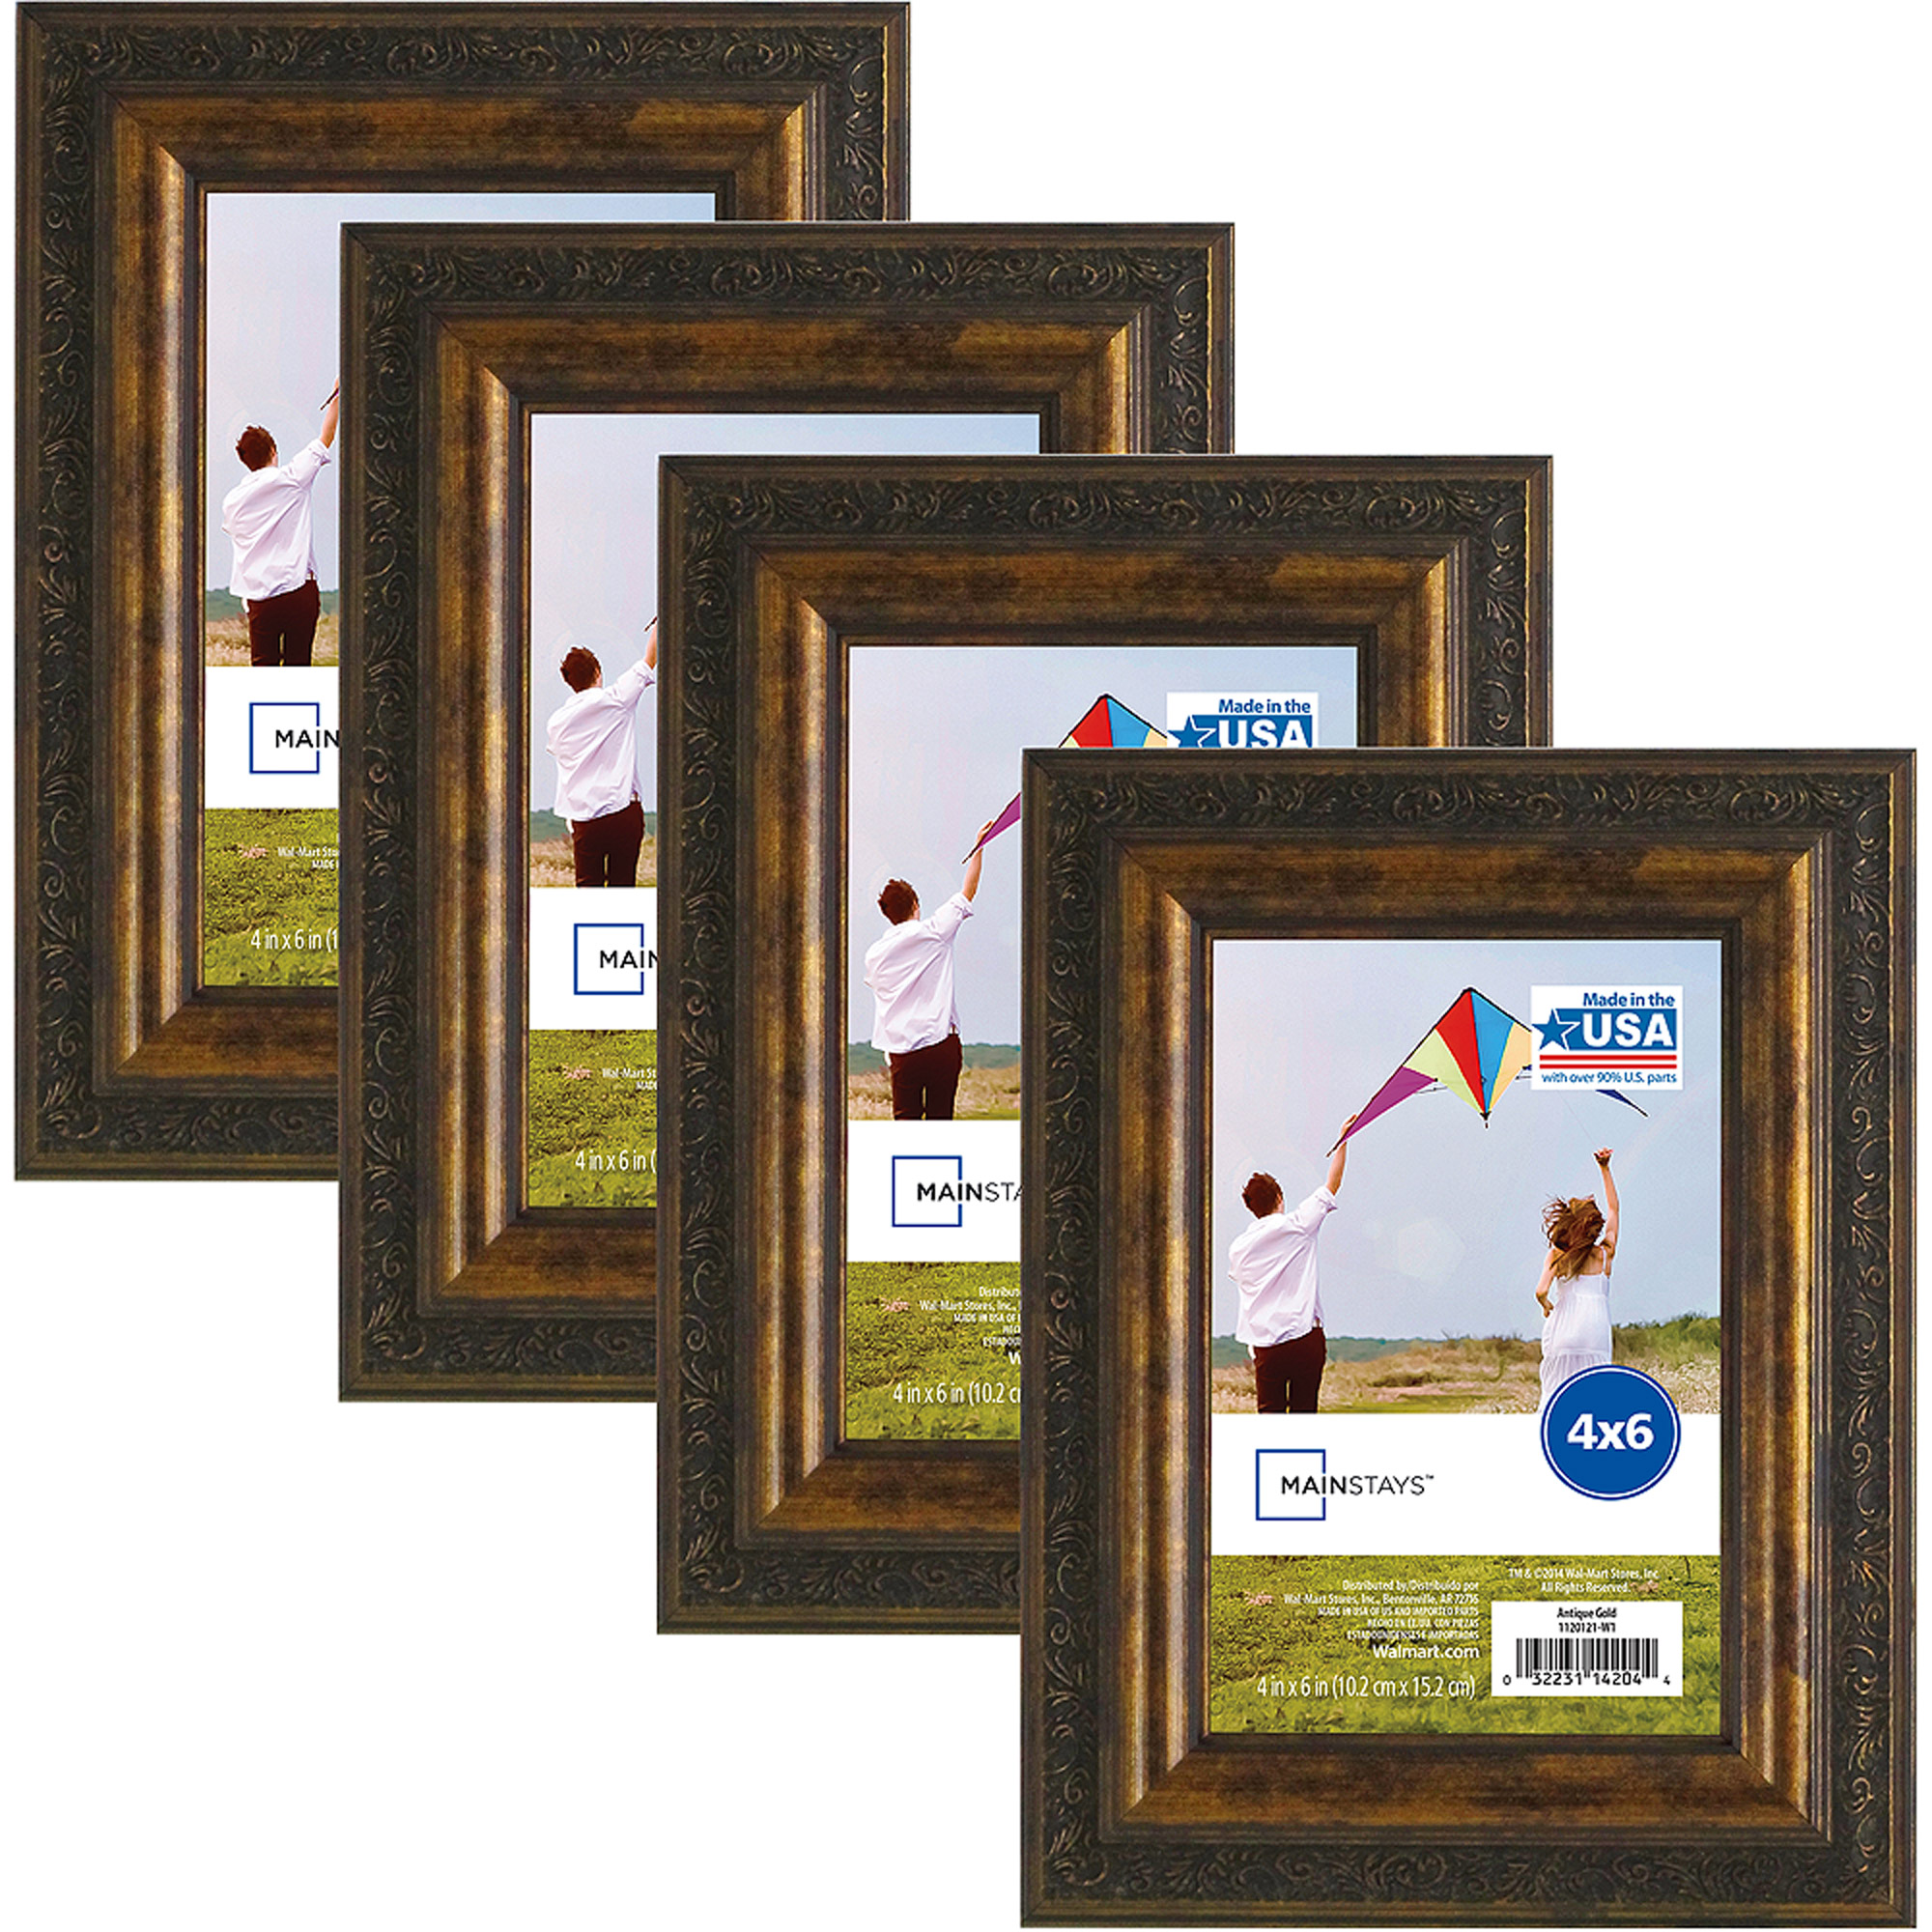 Mainstays Antique Gold Frame, Set of 4 - Multiple Sizes available